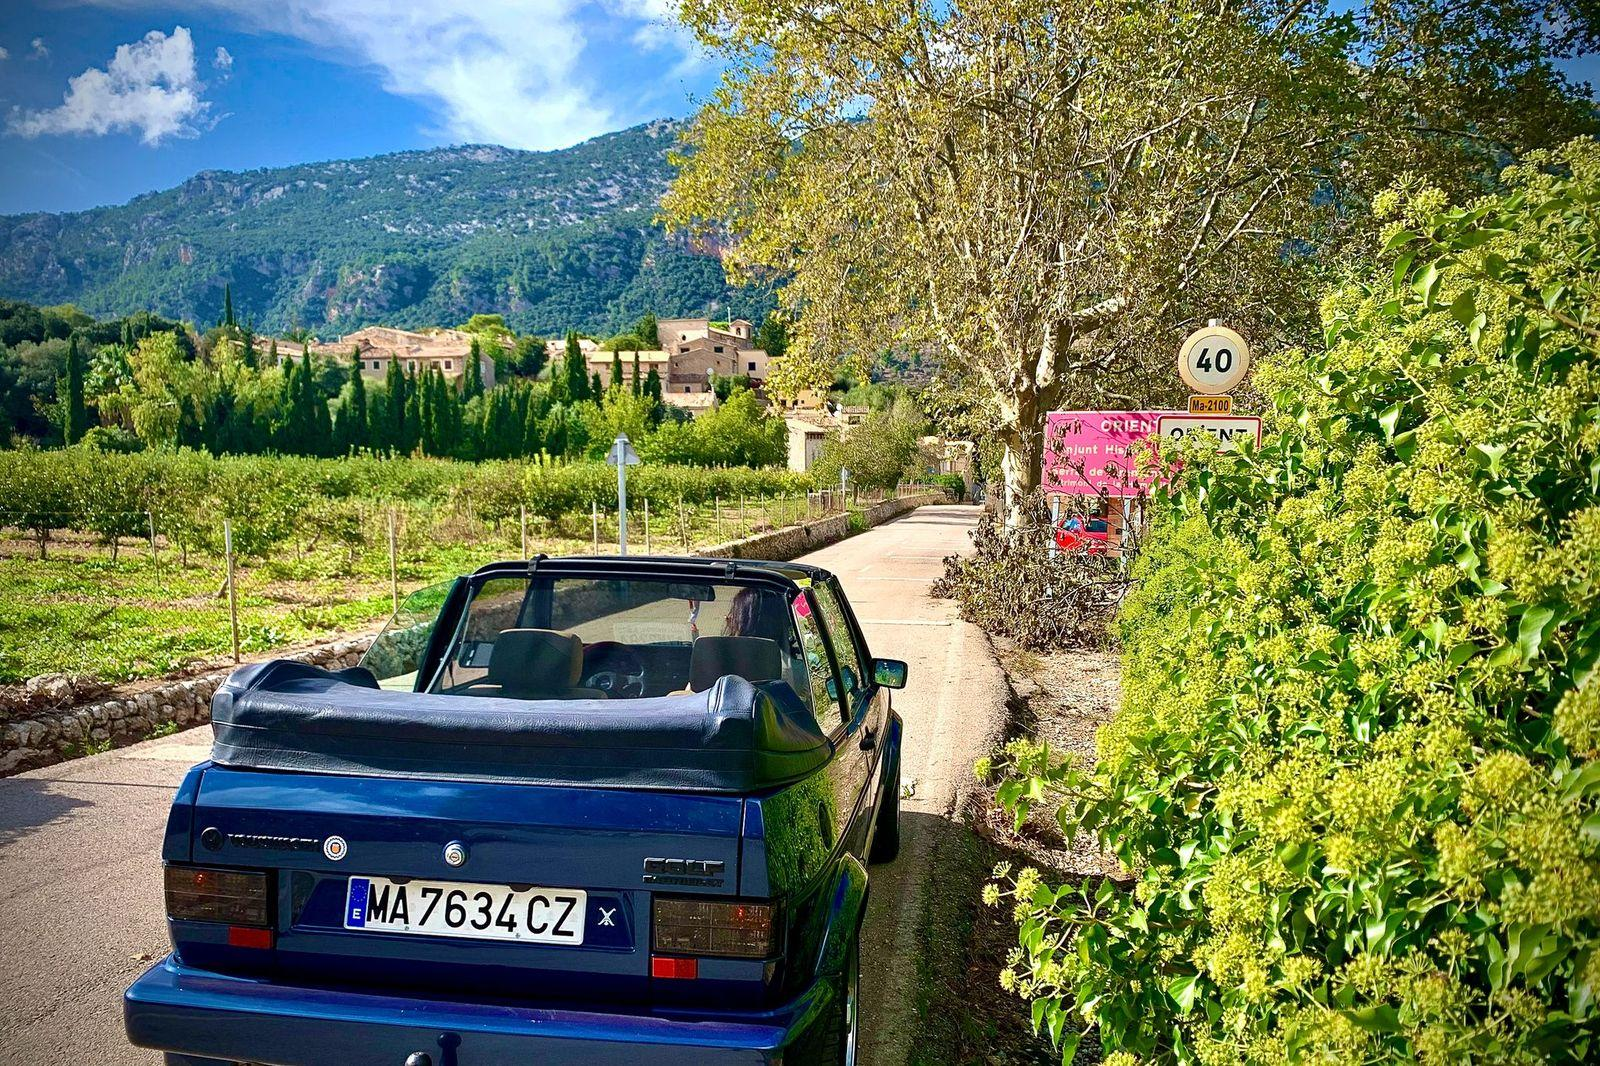 Classic Golf Cabrio GTI is just the ride for tracking down Pueblos